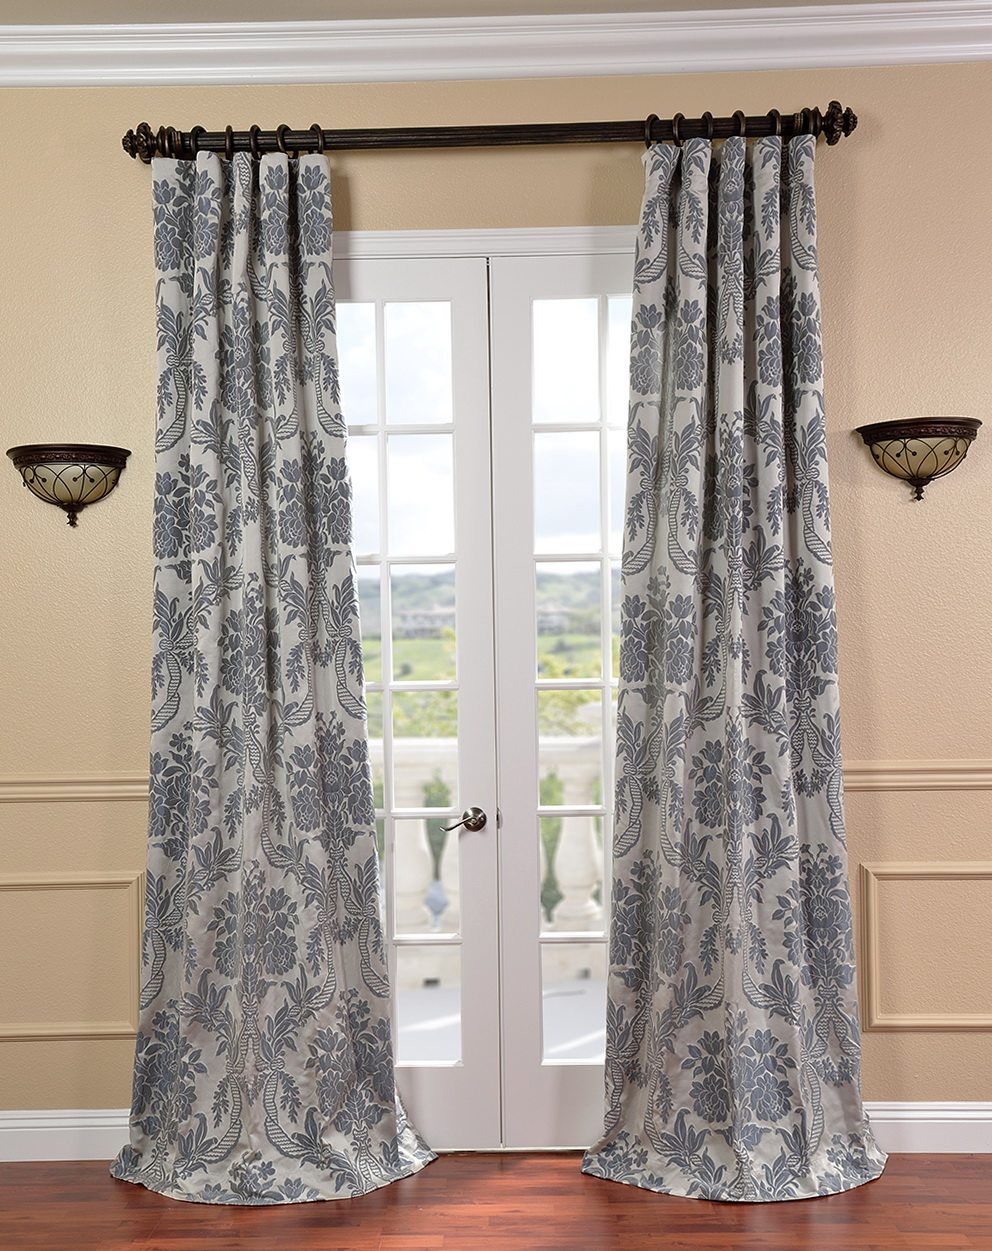 Fire Retardant Curtains Target Home Design Ideas